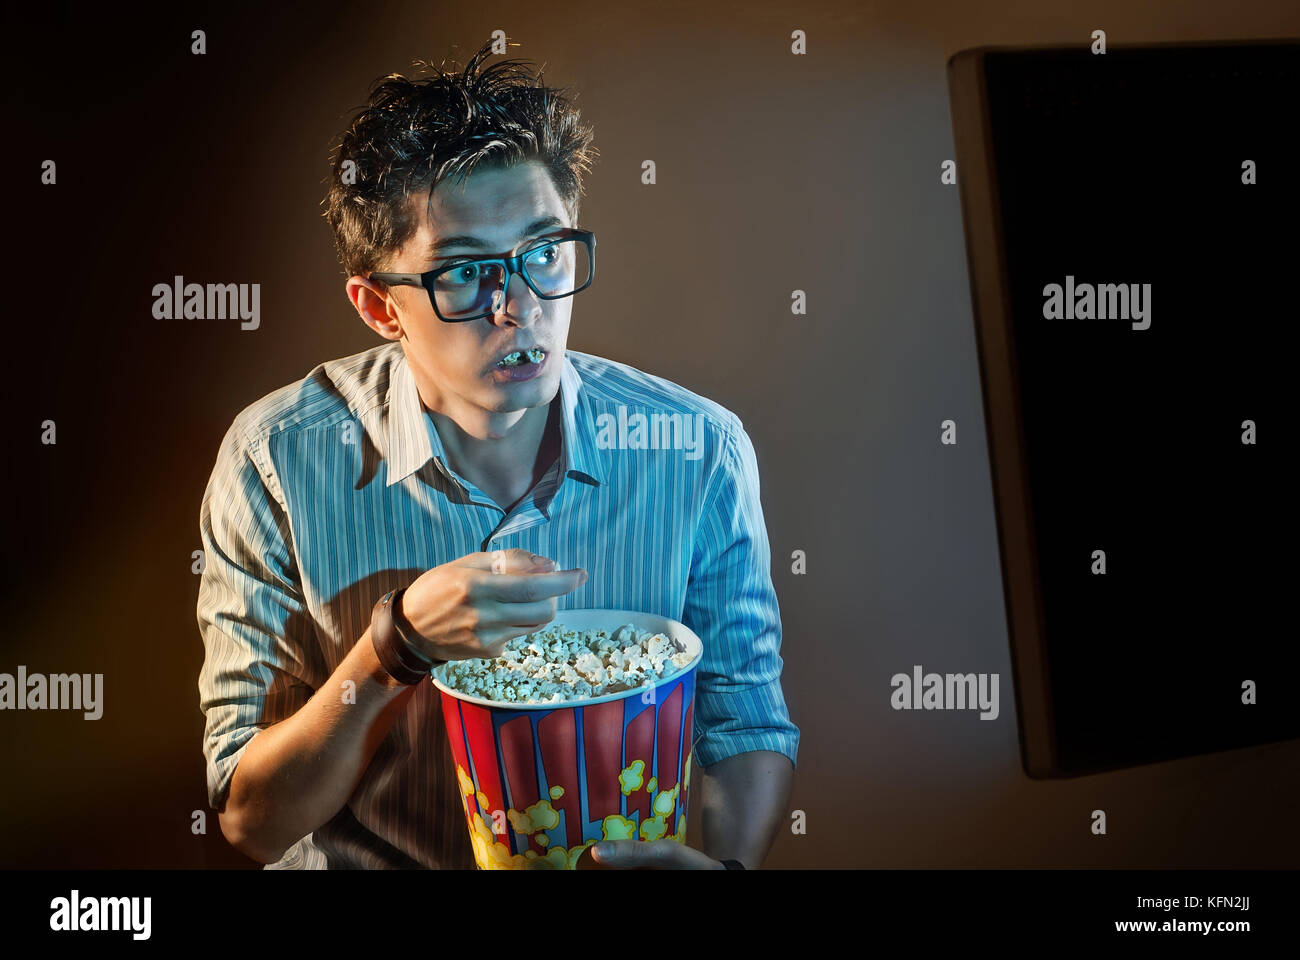 drinking photo close faceless and hands of stock popcorn soda flat home royalty watching free holding movie romantic up closed couple watches eating